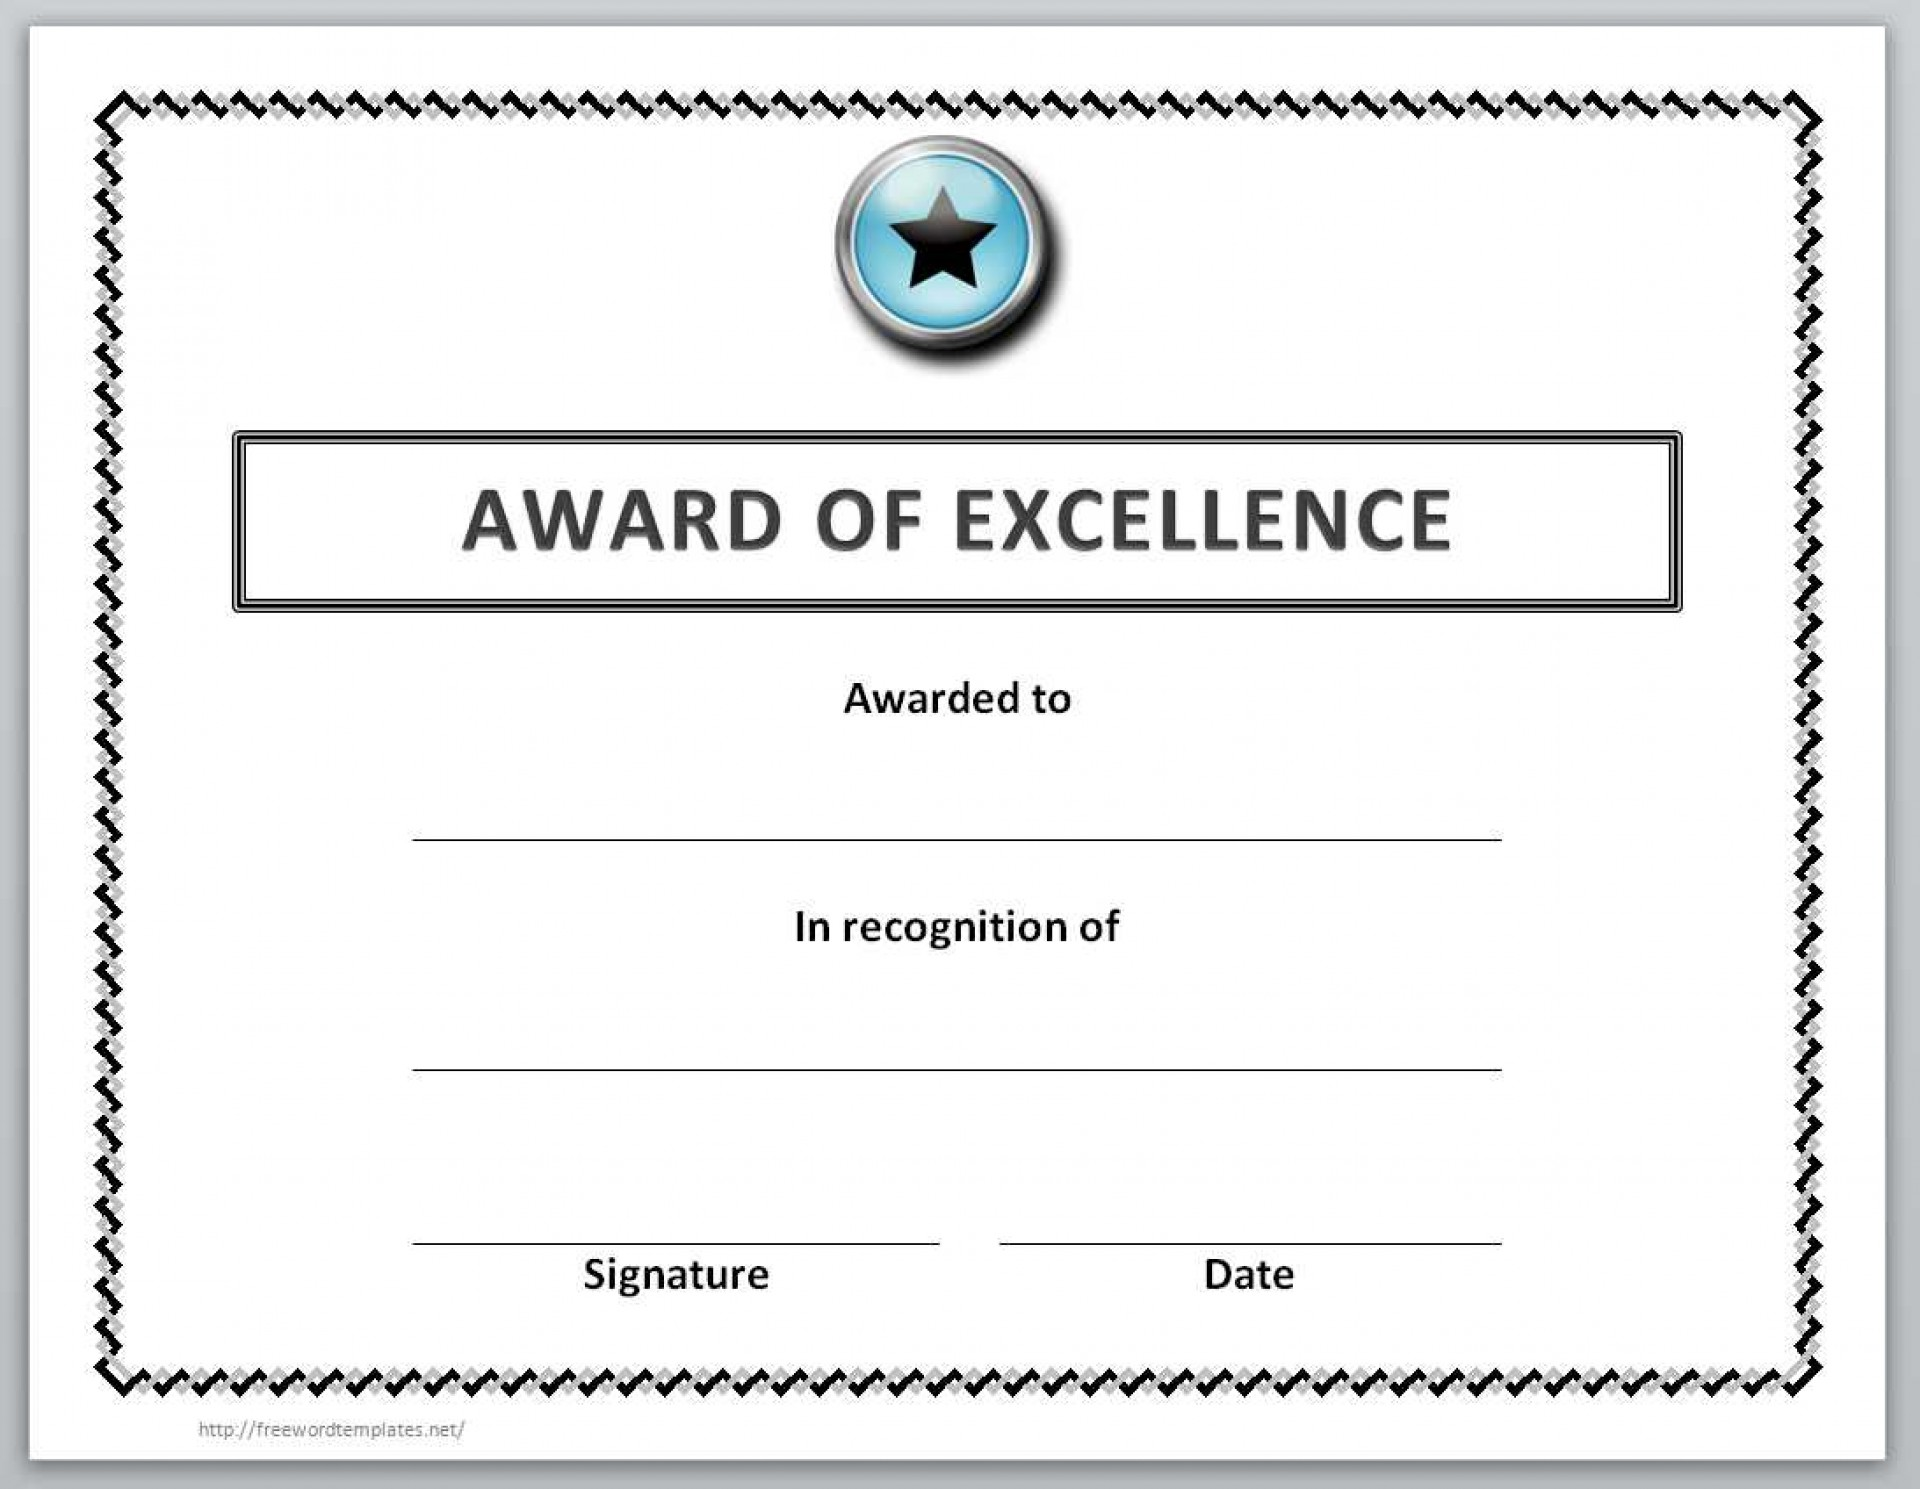 006 Unique Award Certificate Template Word Highest Quality  Doc Sample Wording Scholarship1920